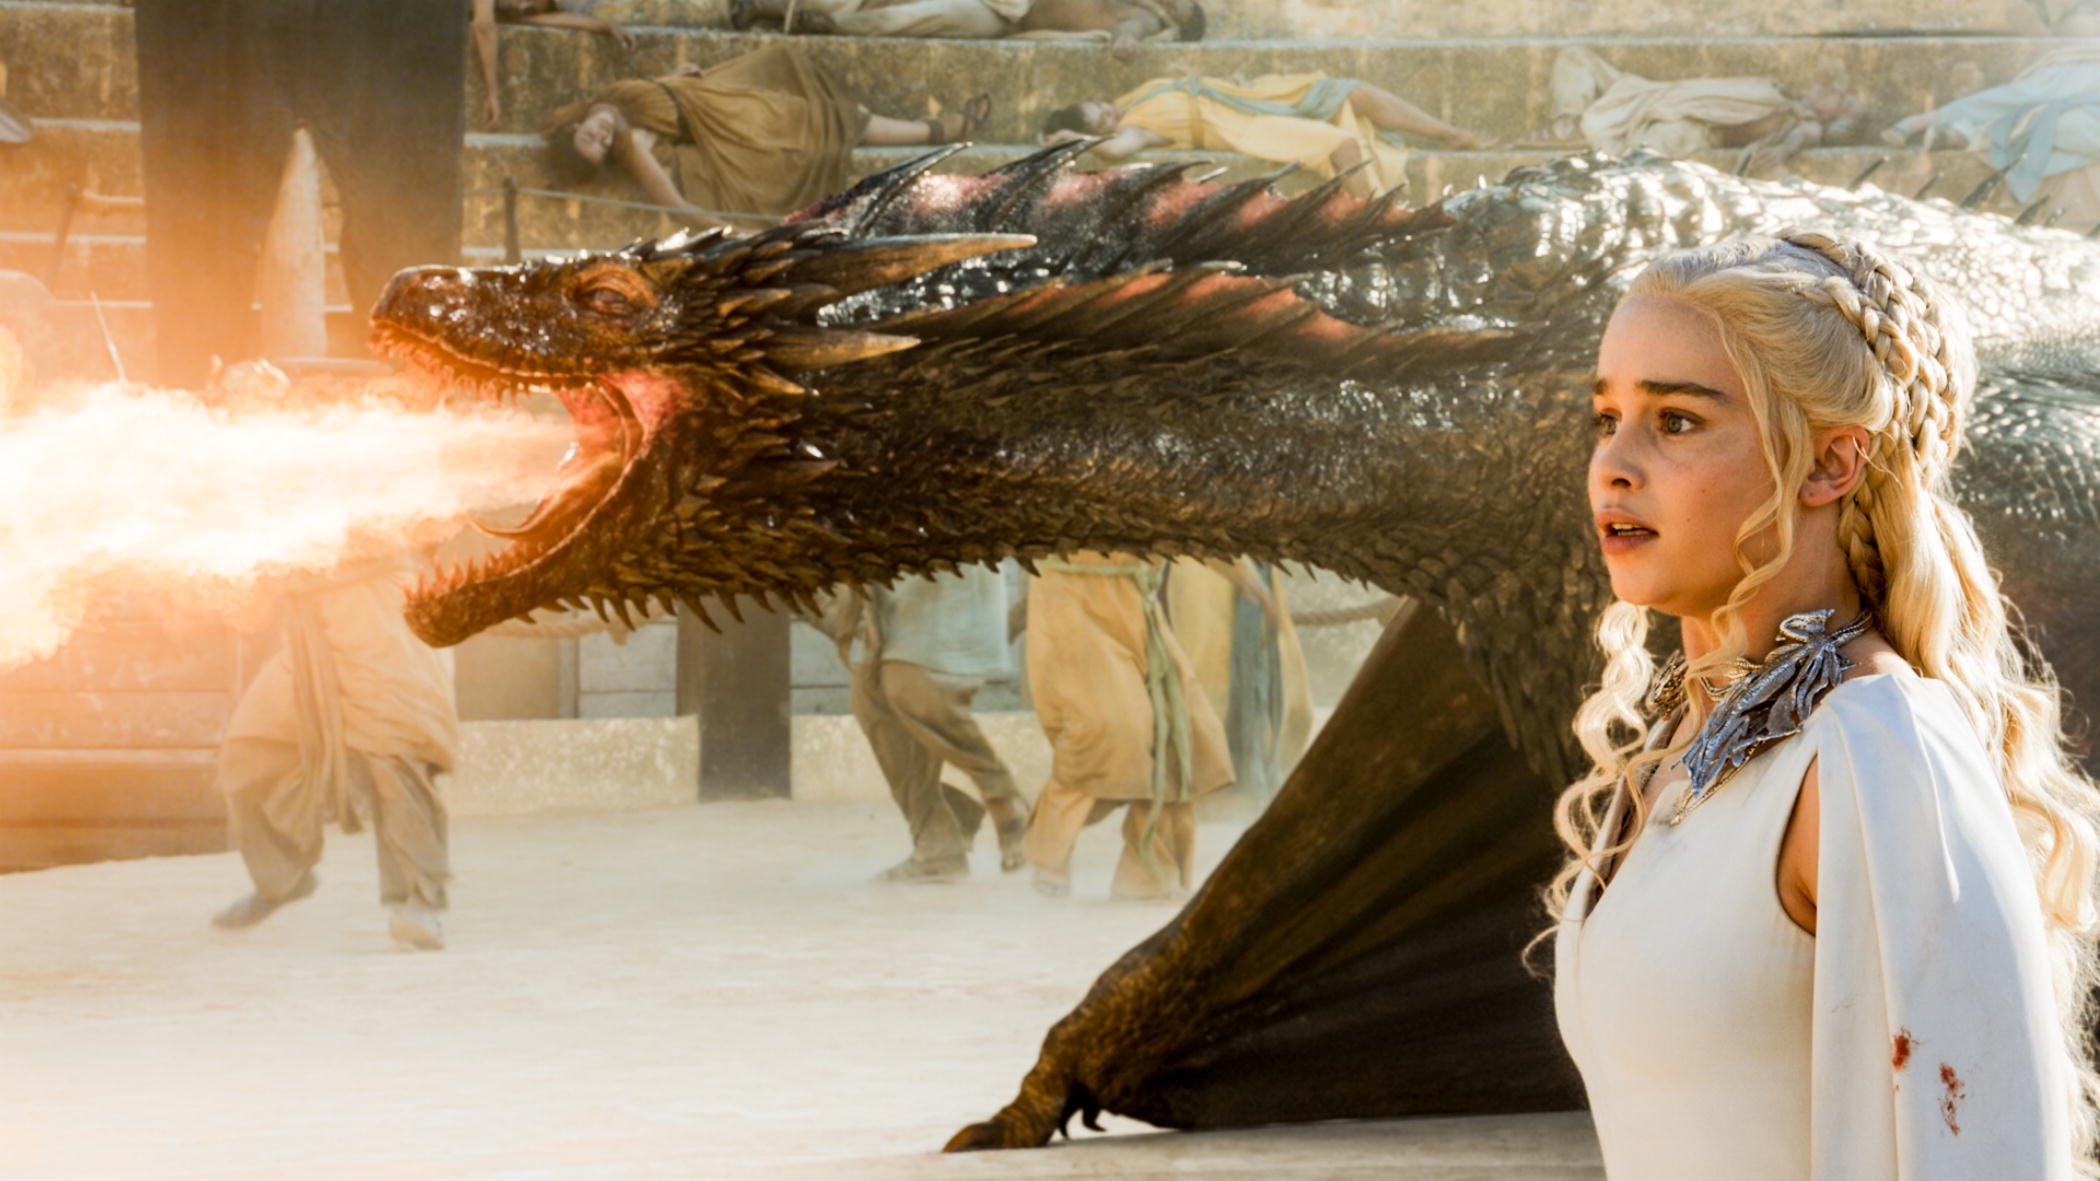 Game of thrones costumes and Game of thrones